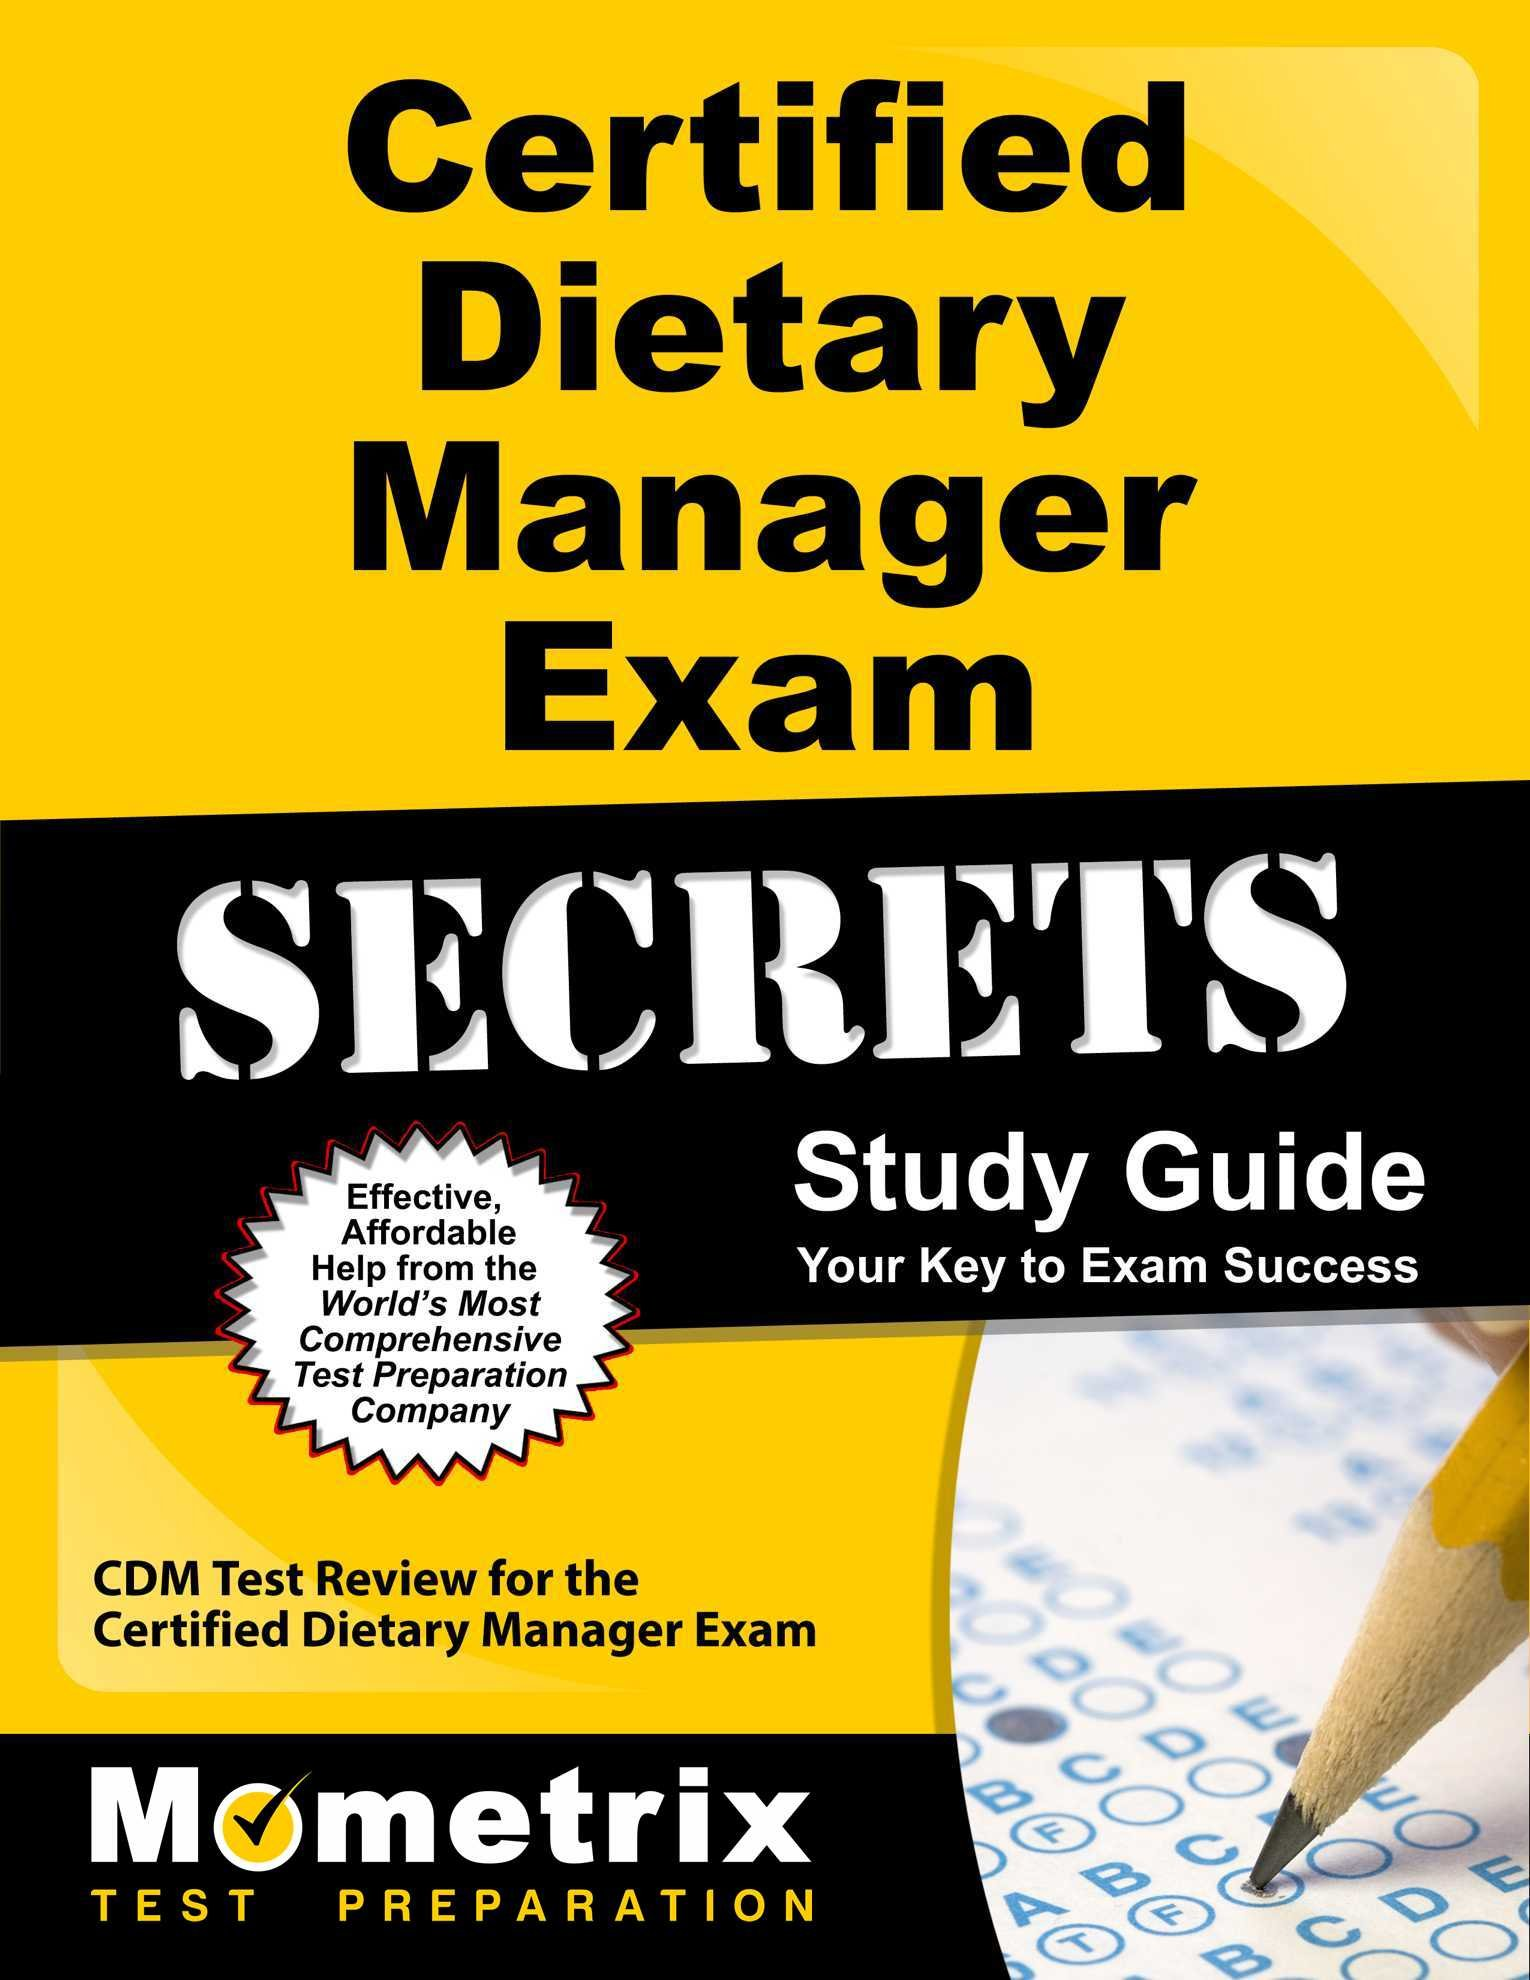 Buy certified dietary manager exam secrets cdm test review for buy certified dietary manager exam secrets cdm test review for the certified dietary manager exam book online at low prices in india certified dietary xflitez Gallery